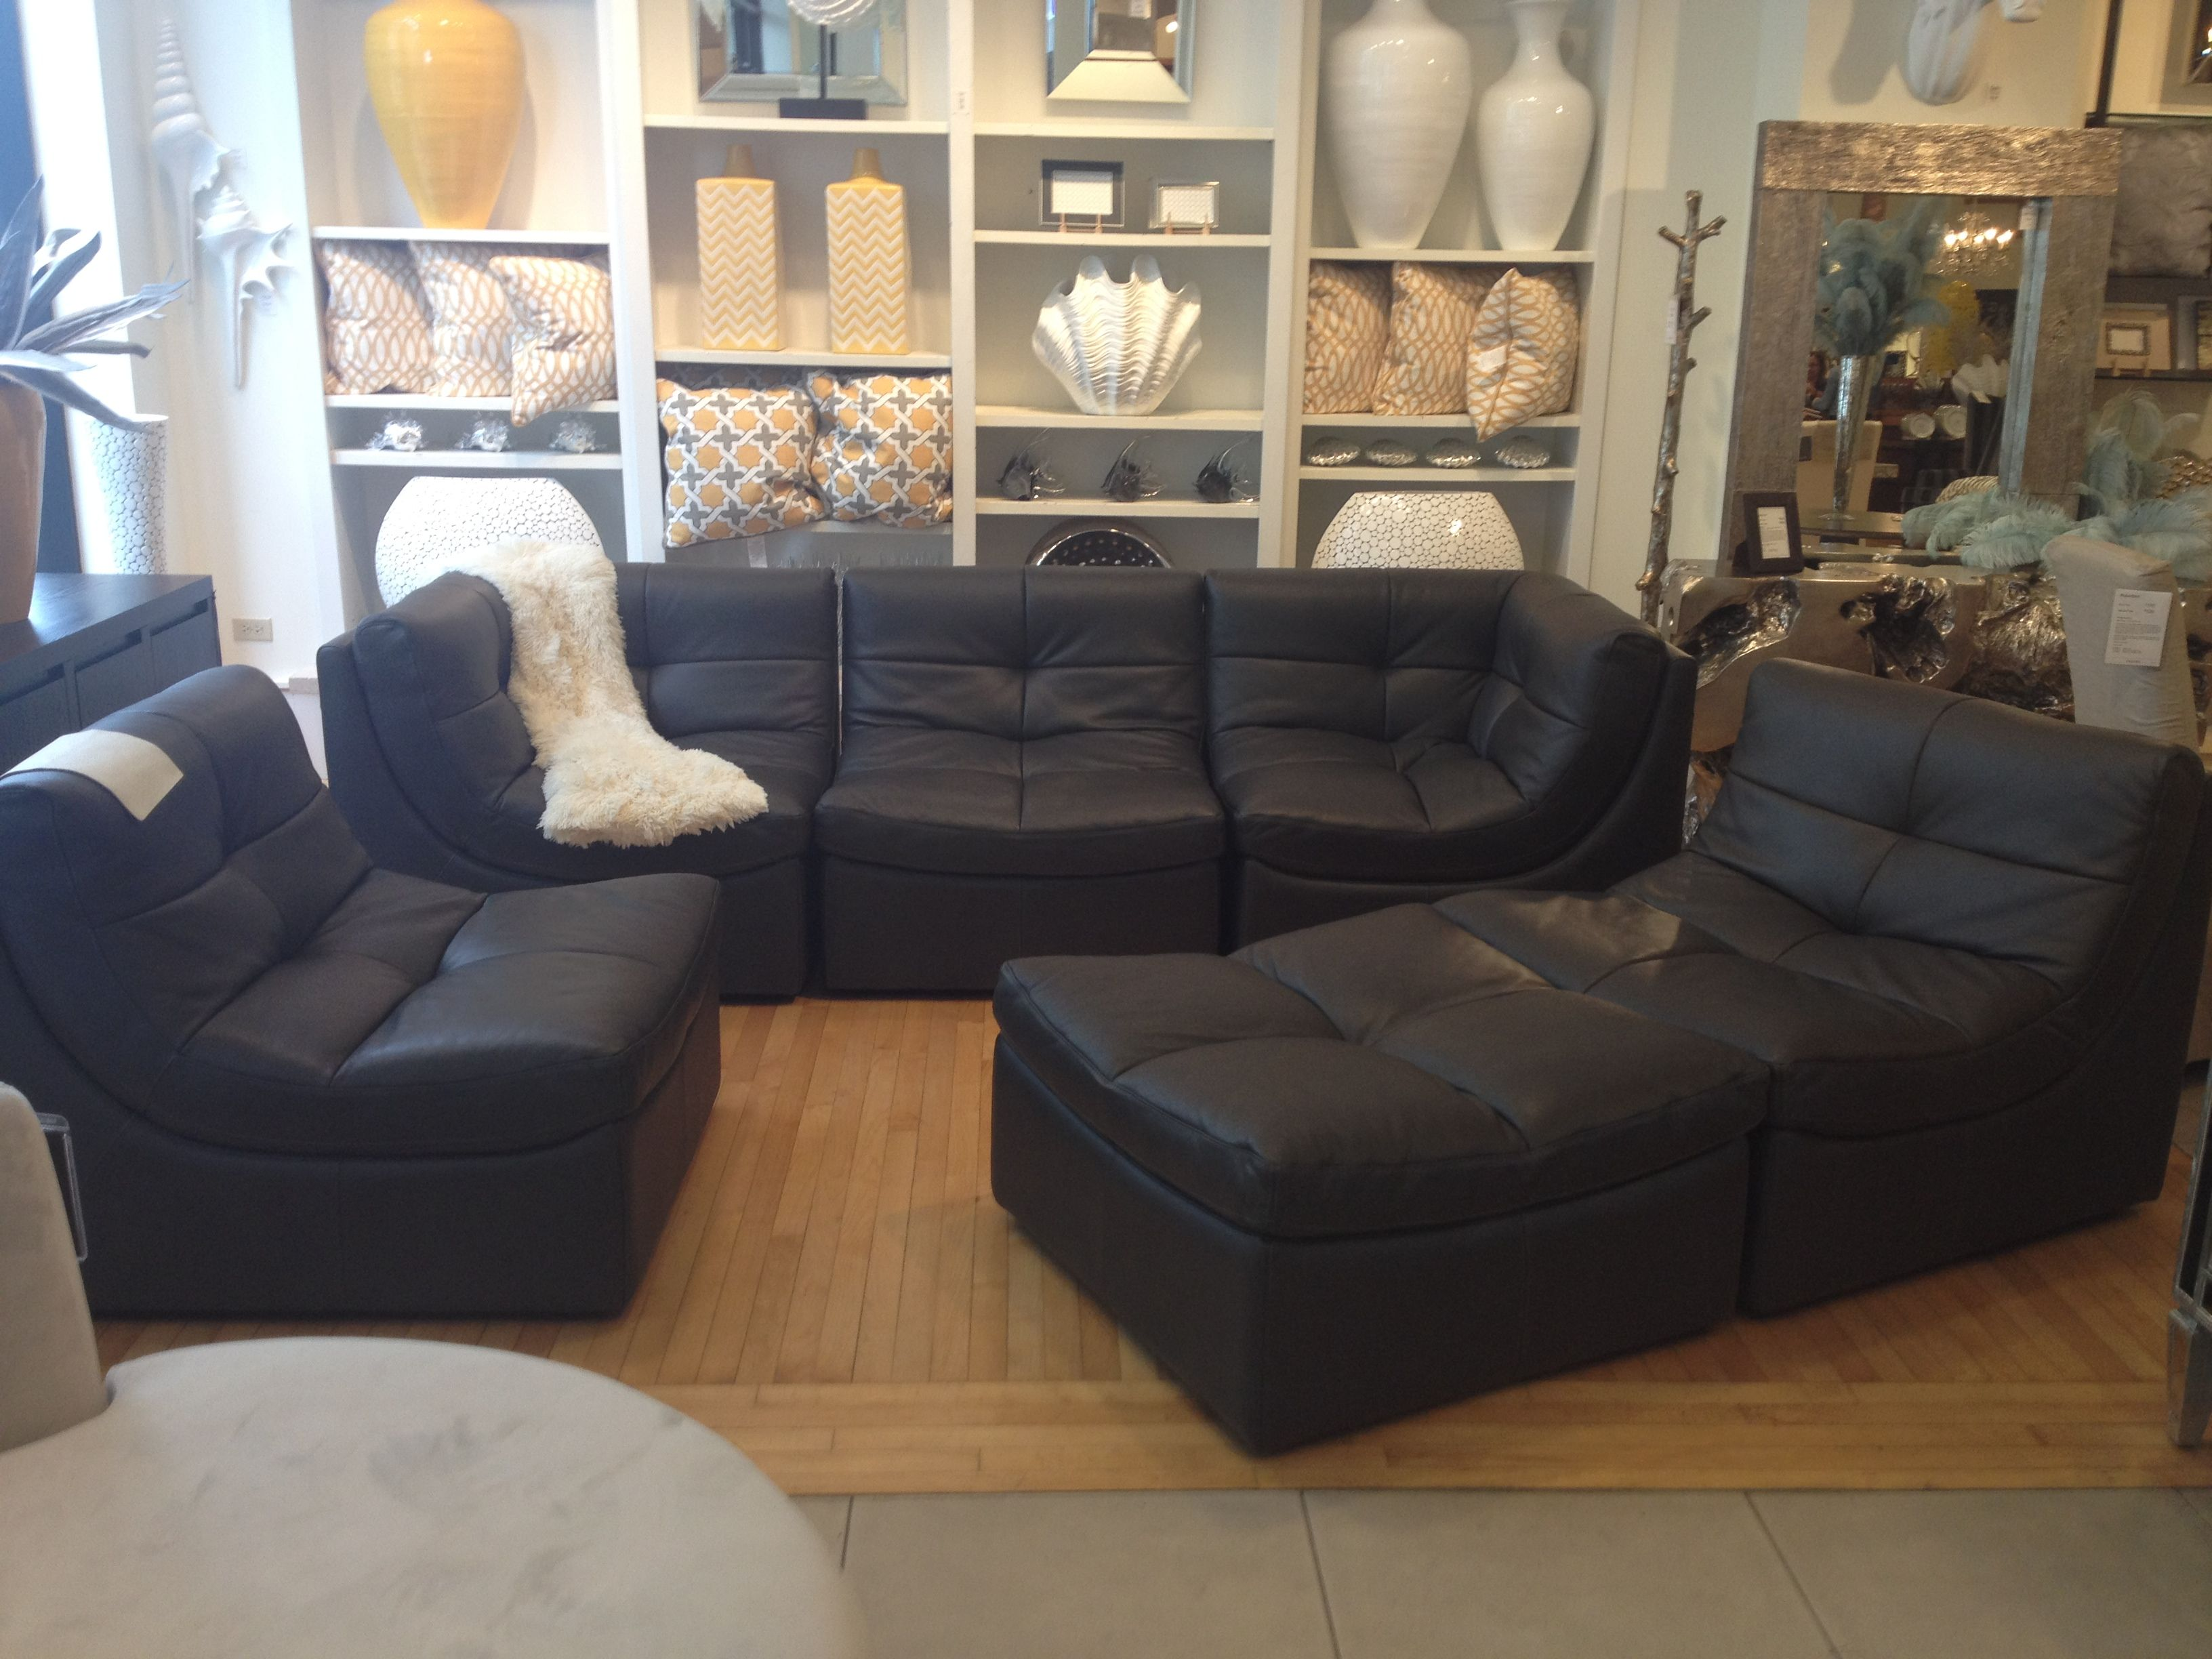 cloud 2 sectional sofa really cheap from zgallerie for the home pinterest